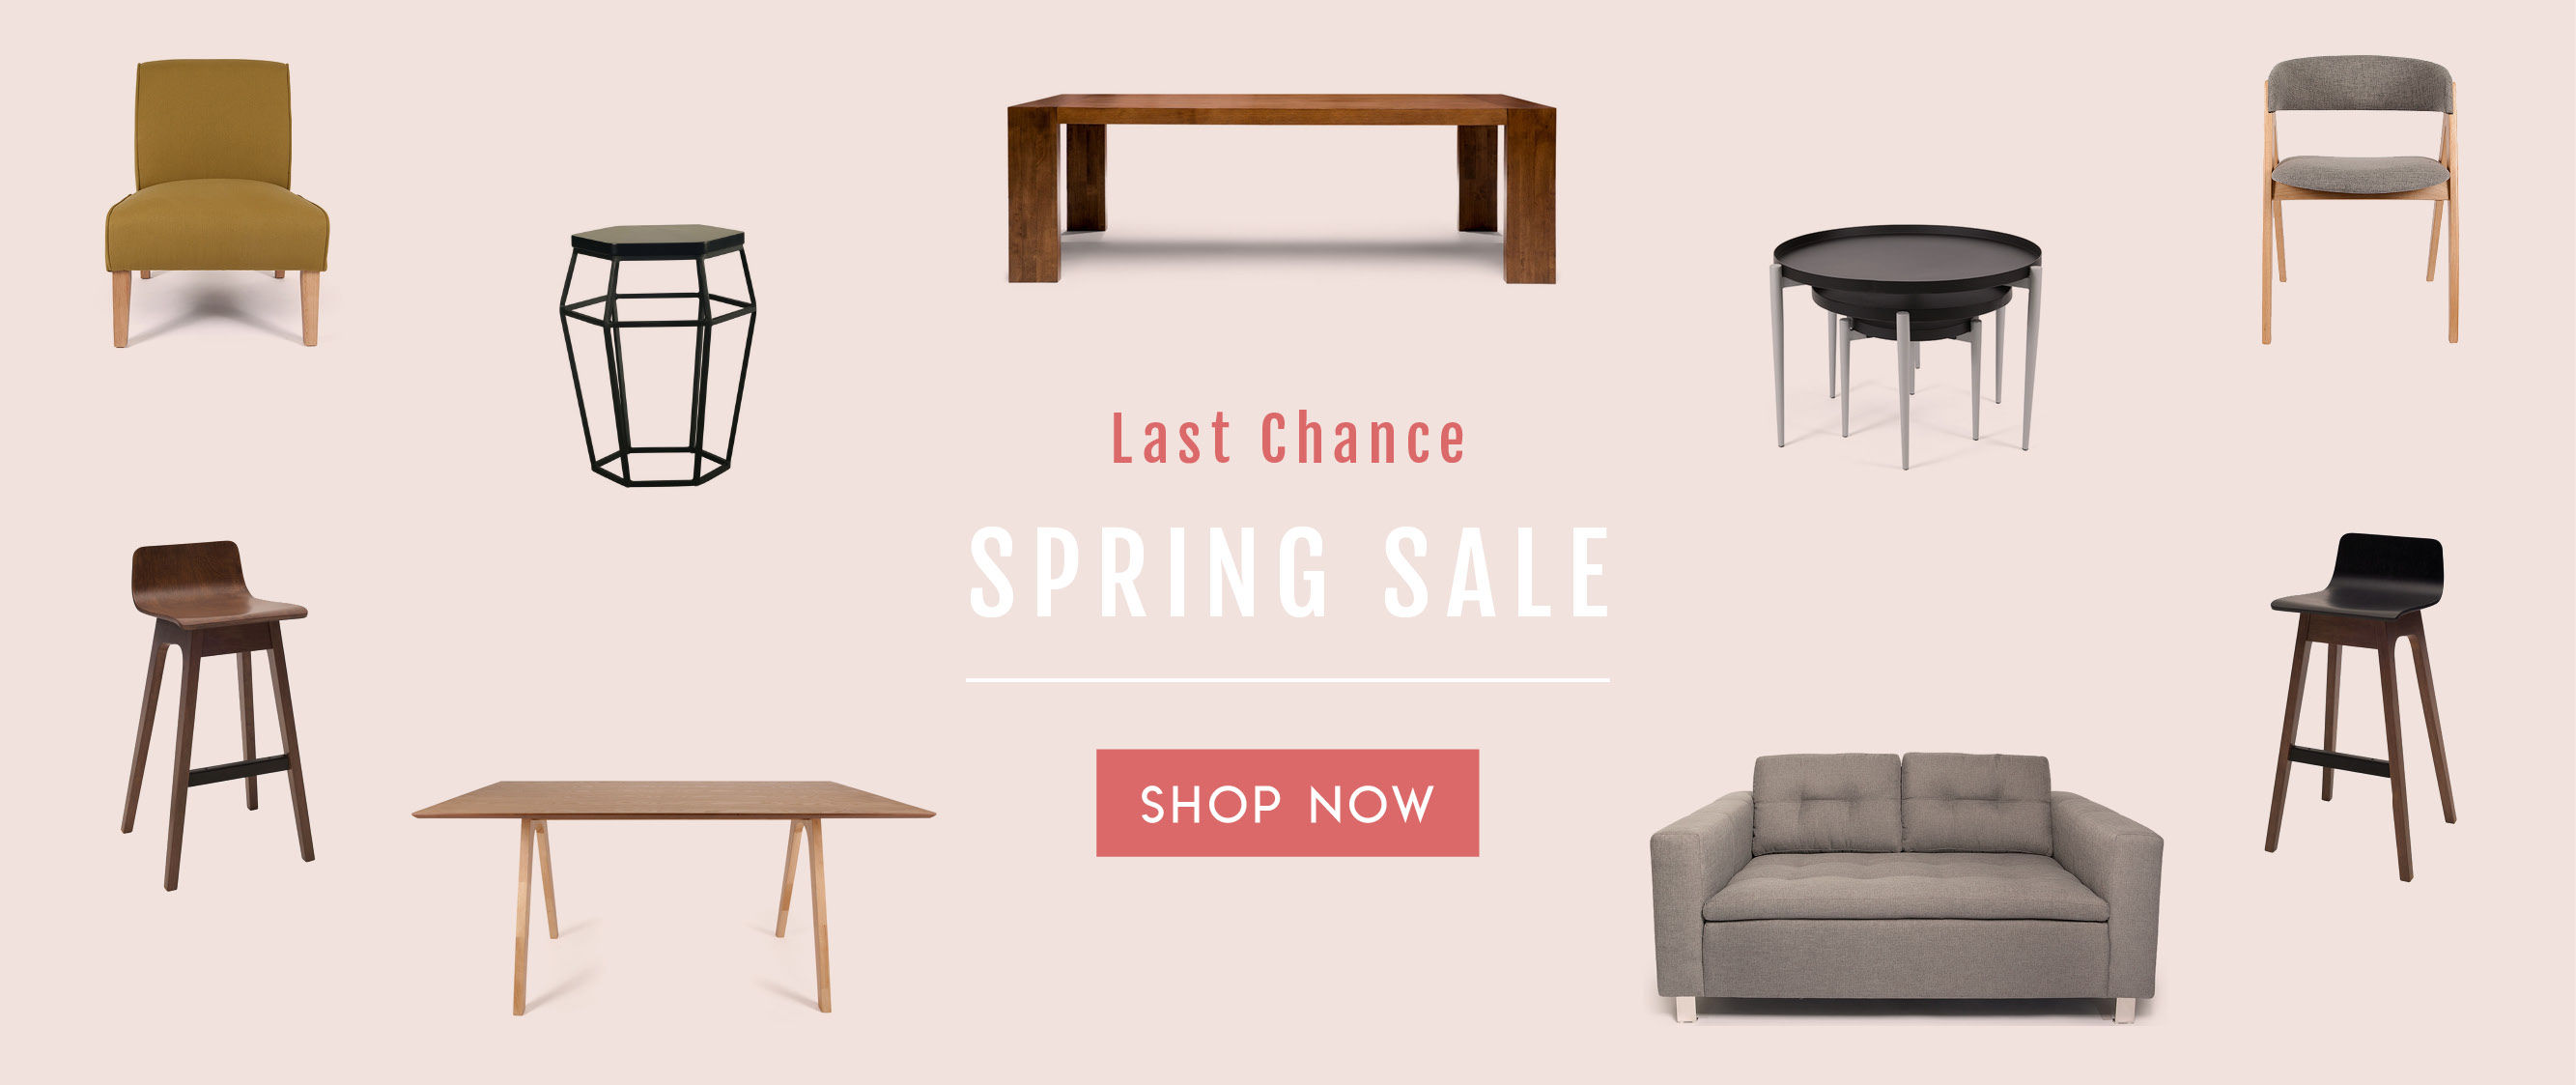 180030_WEB BANNERS_SPRING SALE